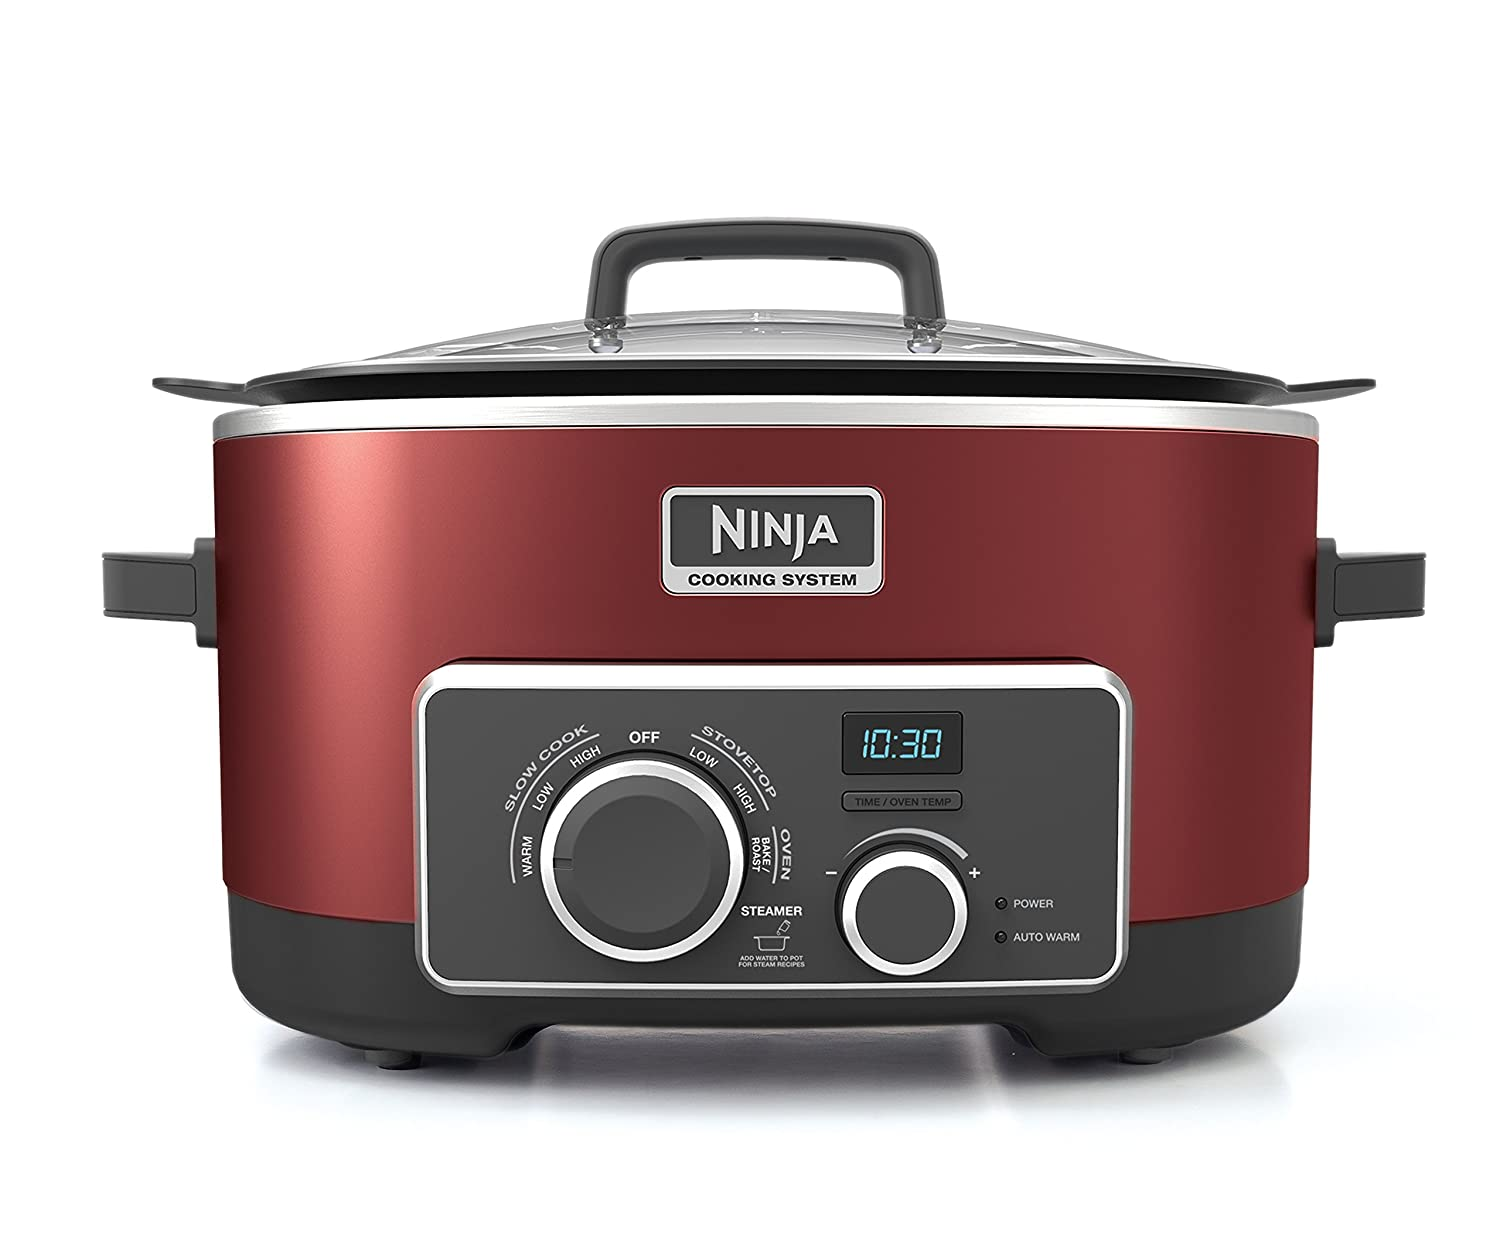 Ninja cooking system recipes - Amazon Com Ninja 4 In 1 Cooking System Red Mc950zcn Kitchen Dining